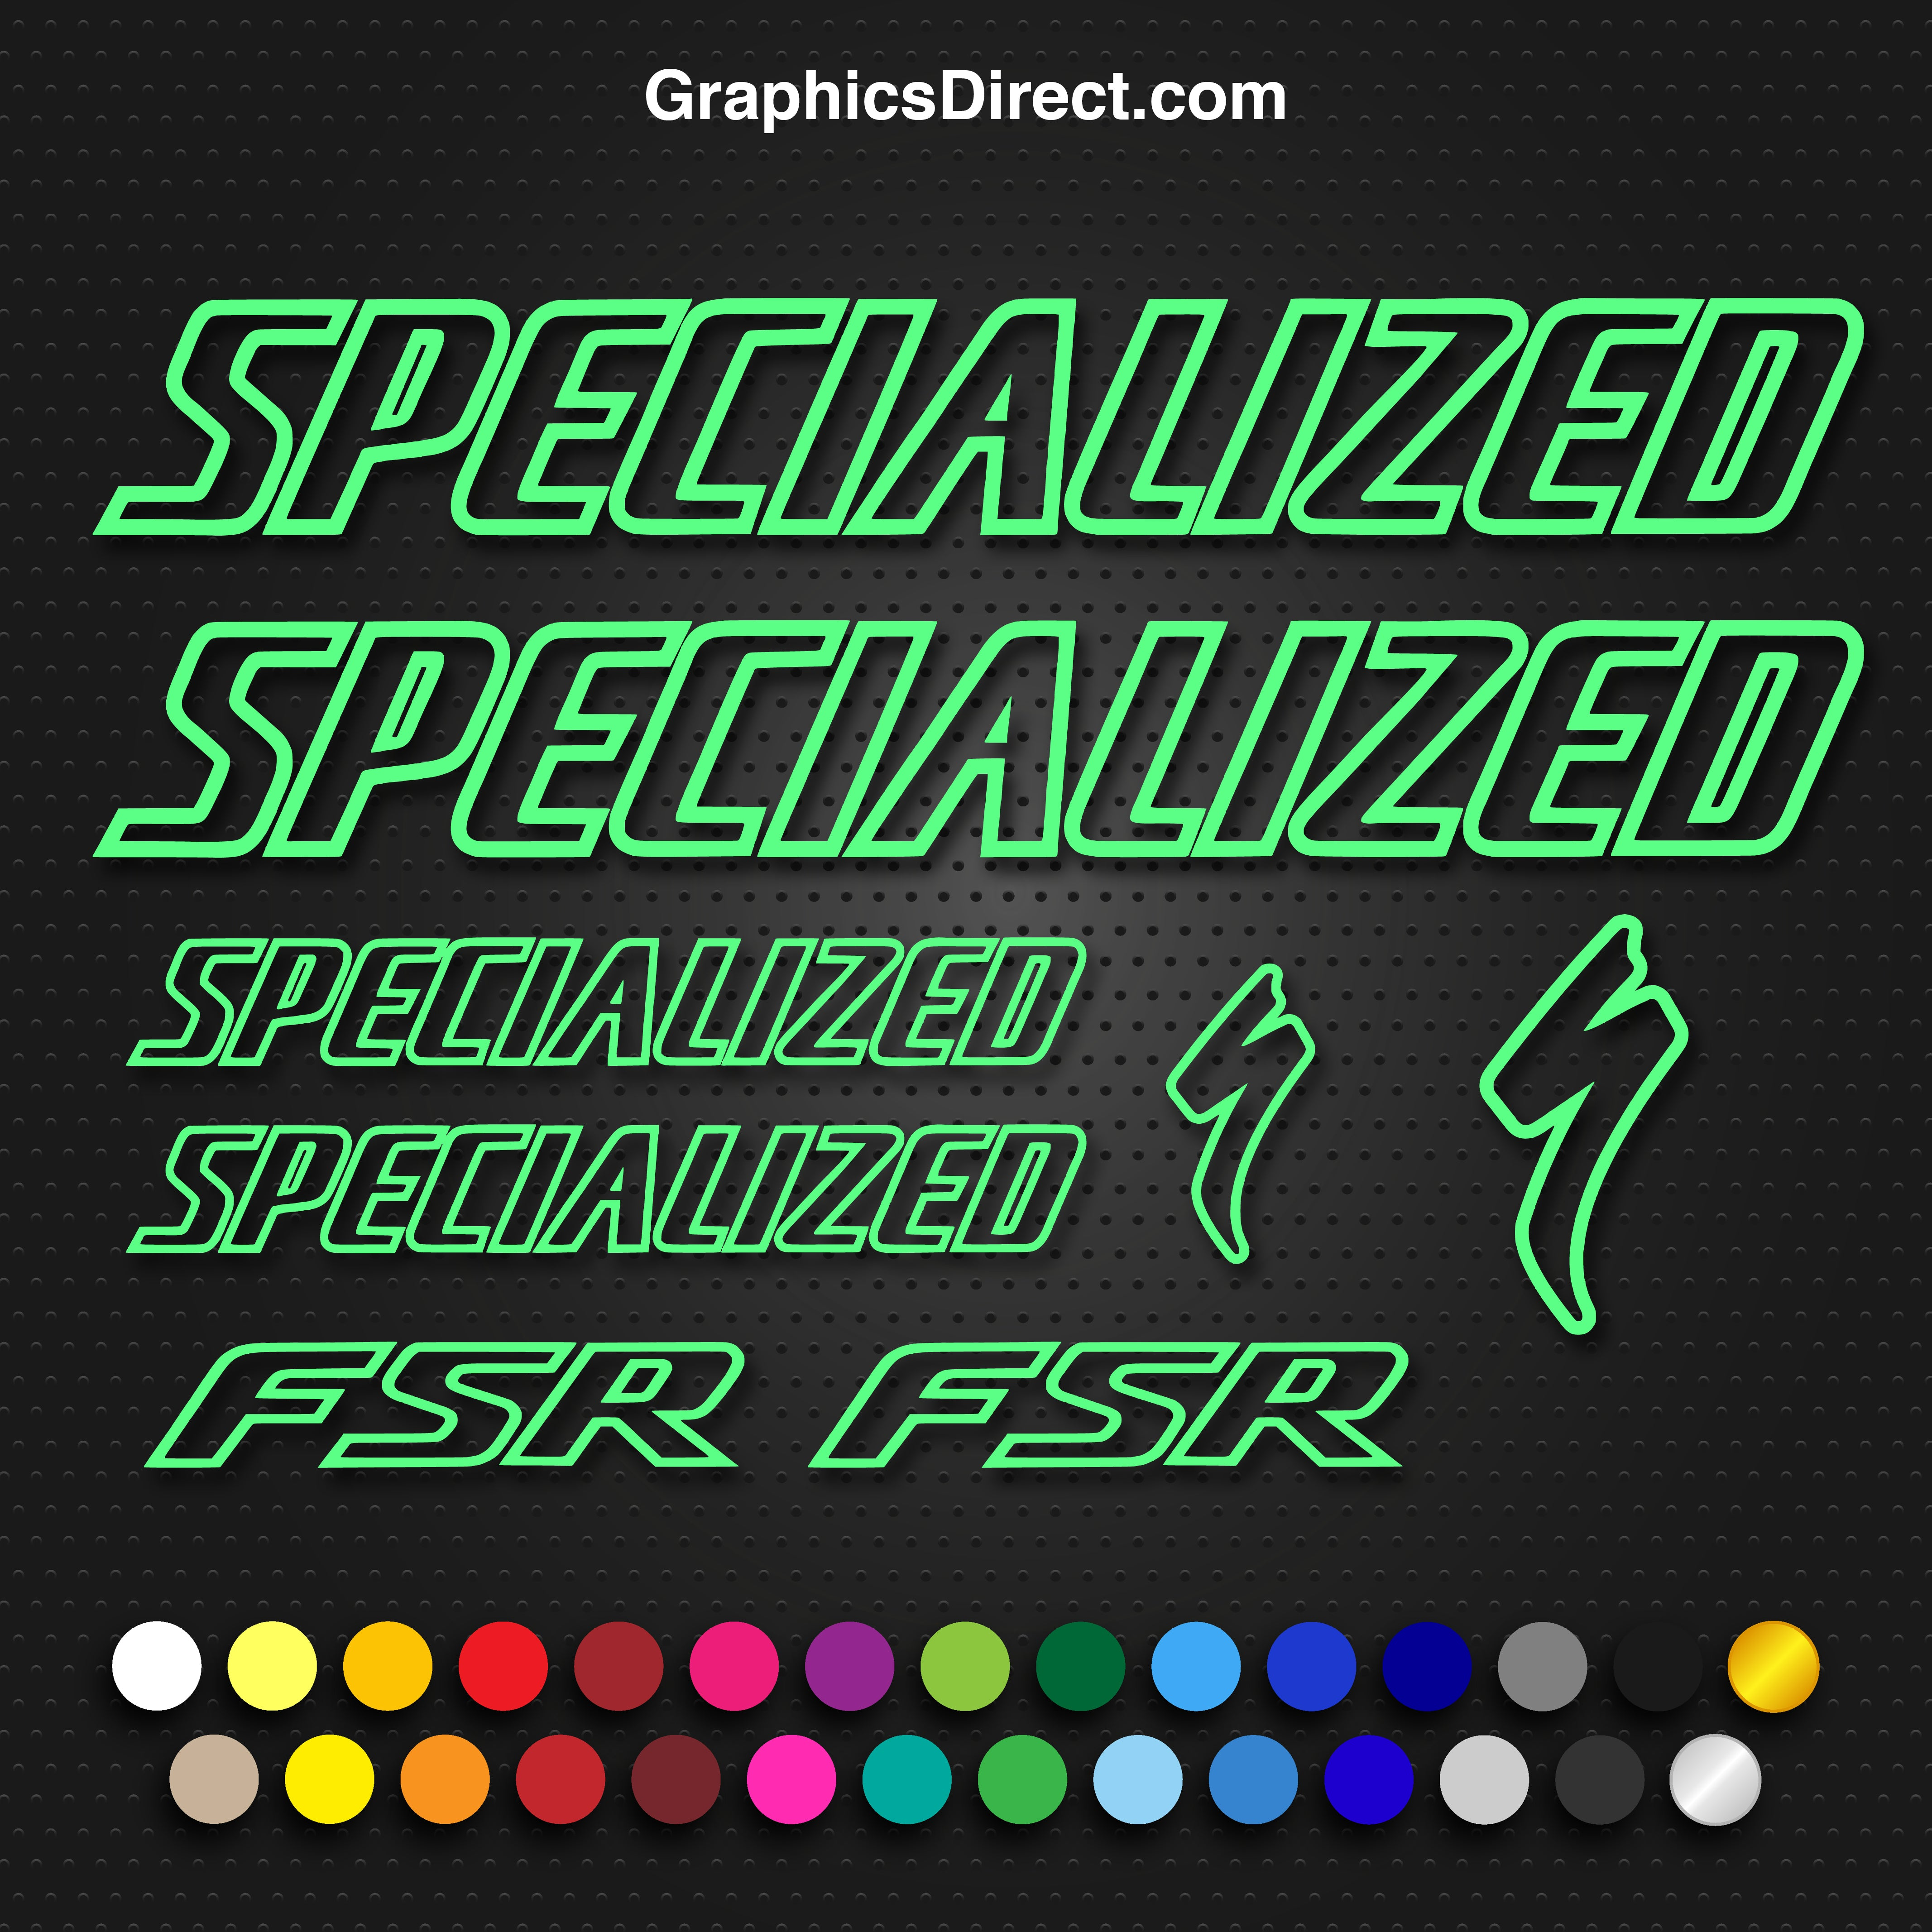 285mm x 38mm Specialized outline style vinyl cut sticker decal many colours.